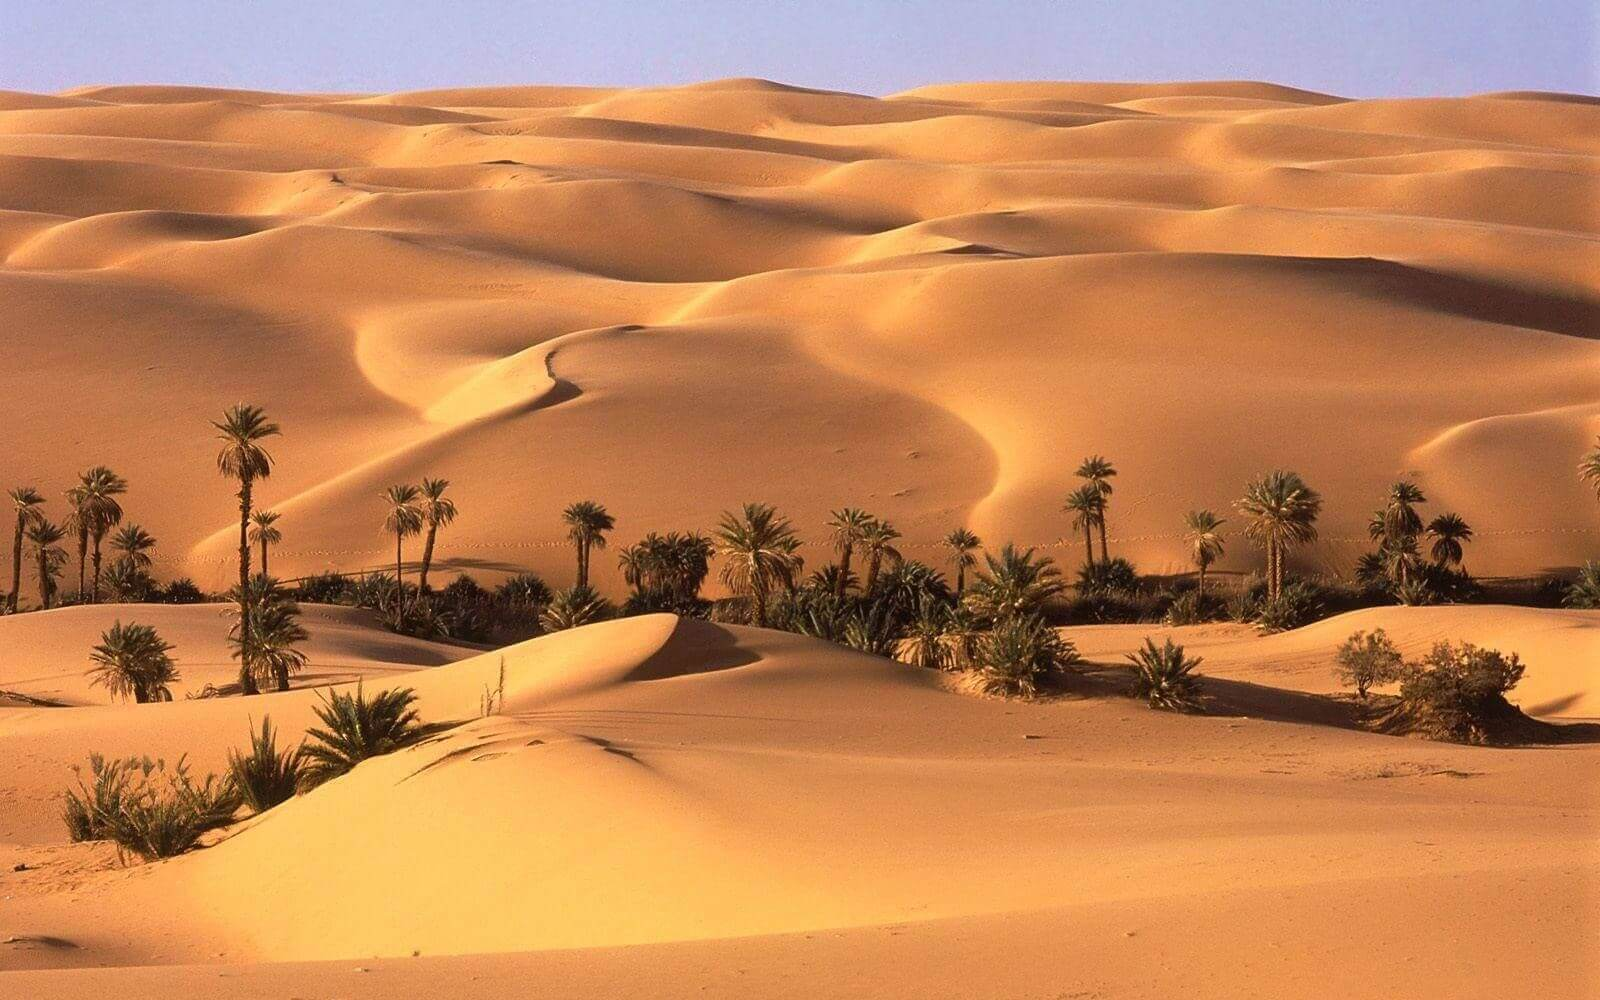 The desert of Egypt